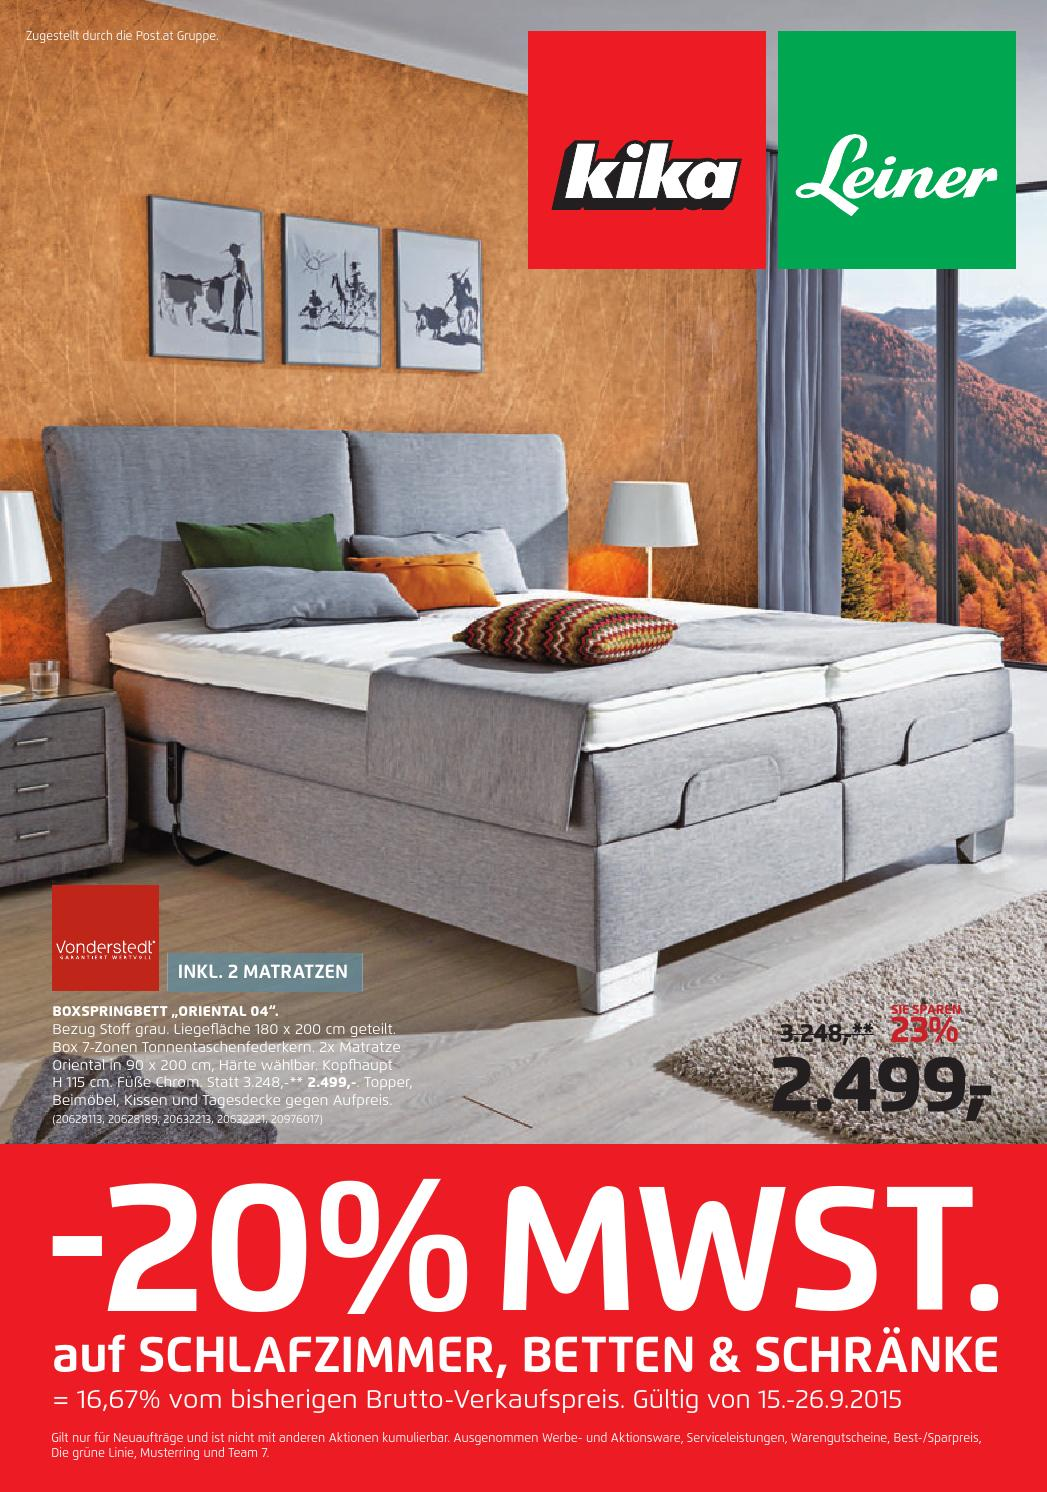 Schlafzimmer Set Kika Kika Angebote 15 26september2015 By Promoangebote At Issuu